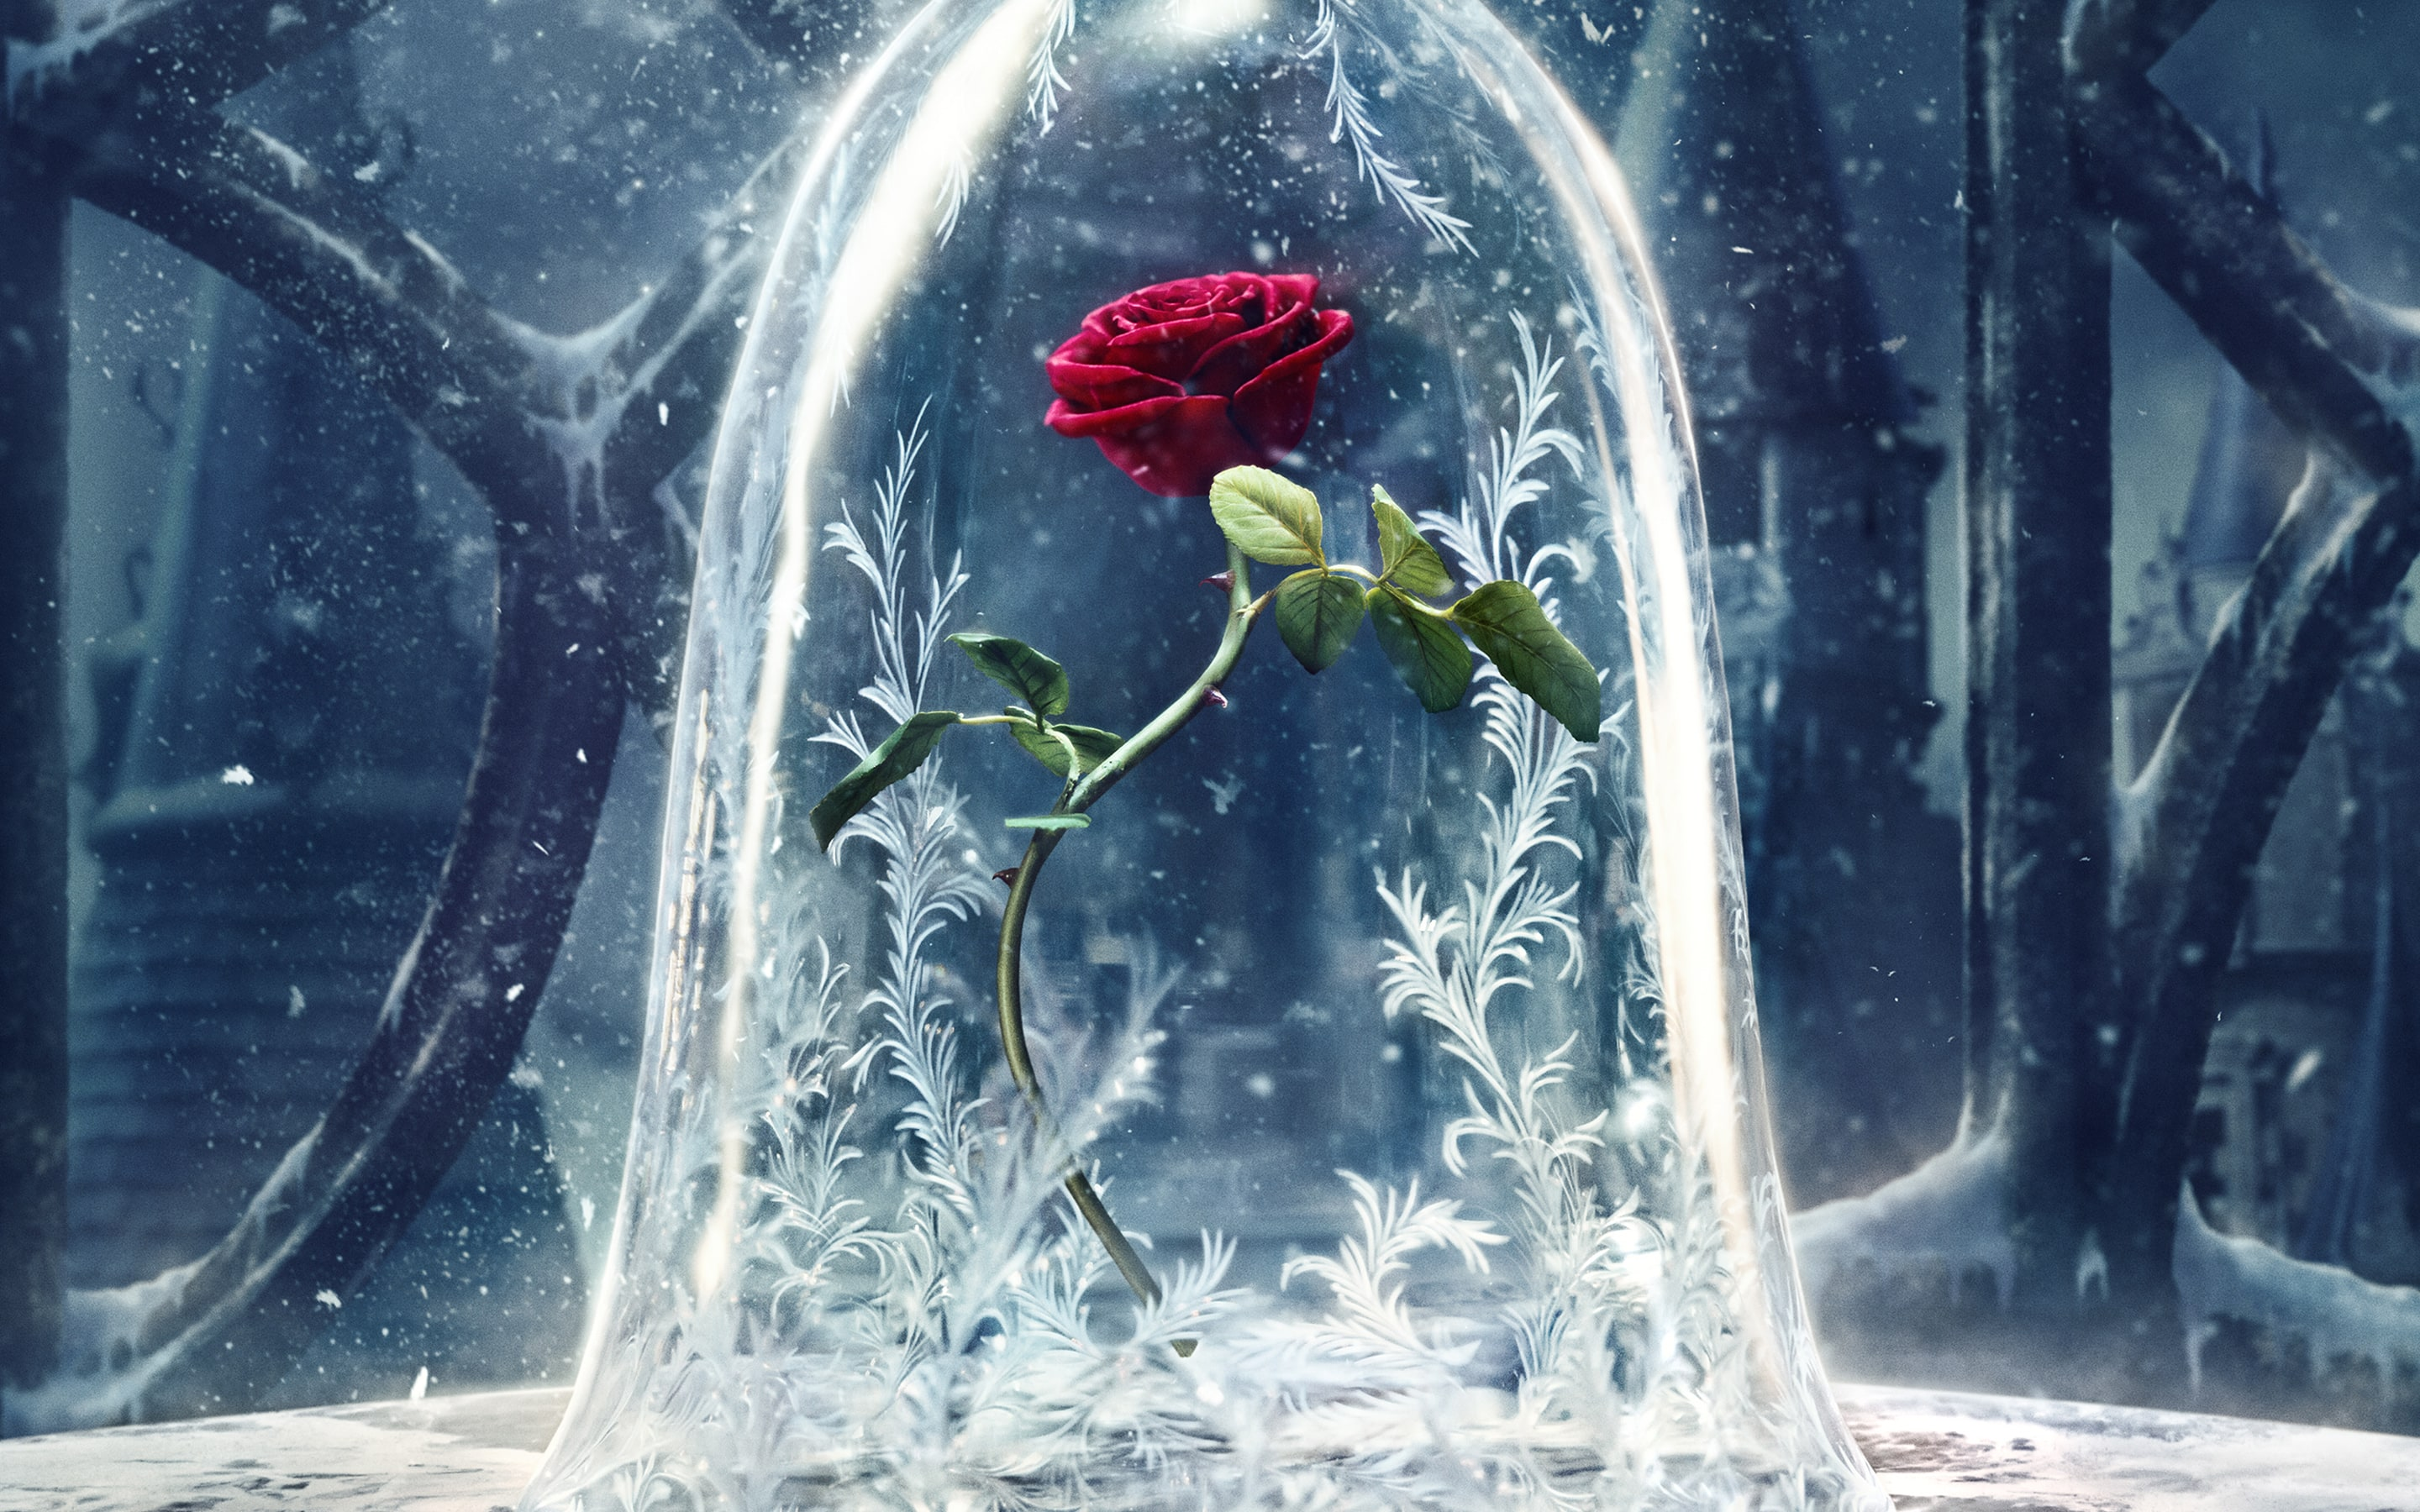 beauty and the beast hd wallpapers 7wallpapers net beauty and the beast hd wallpapers